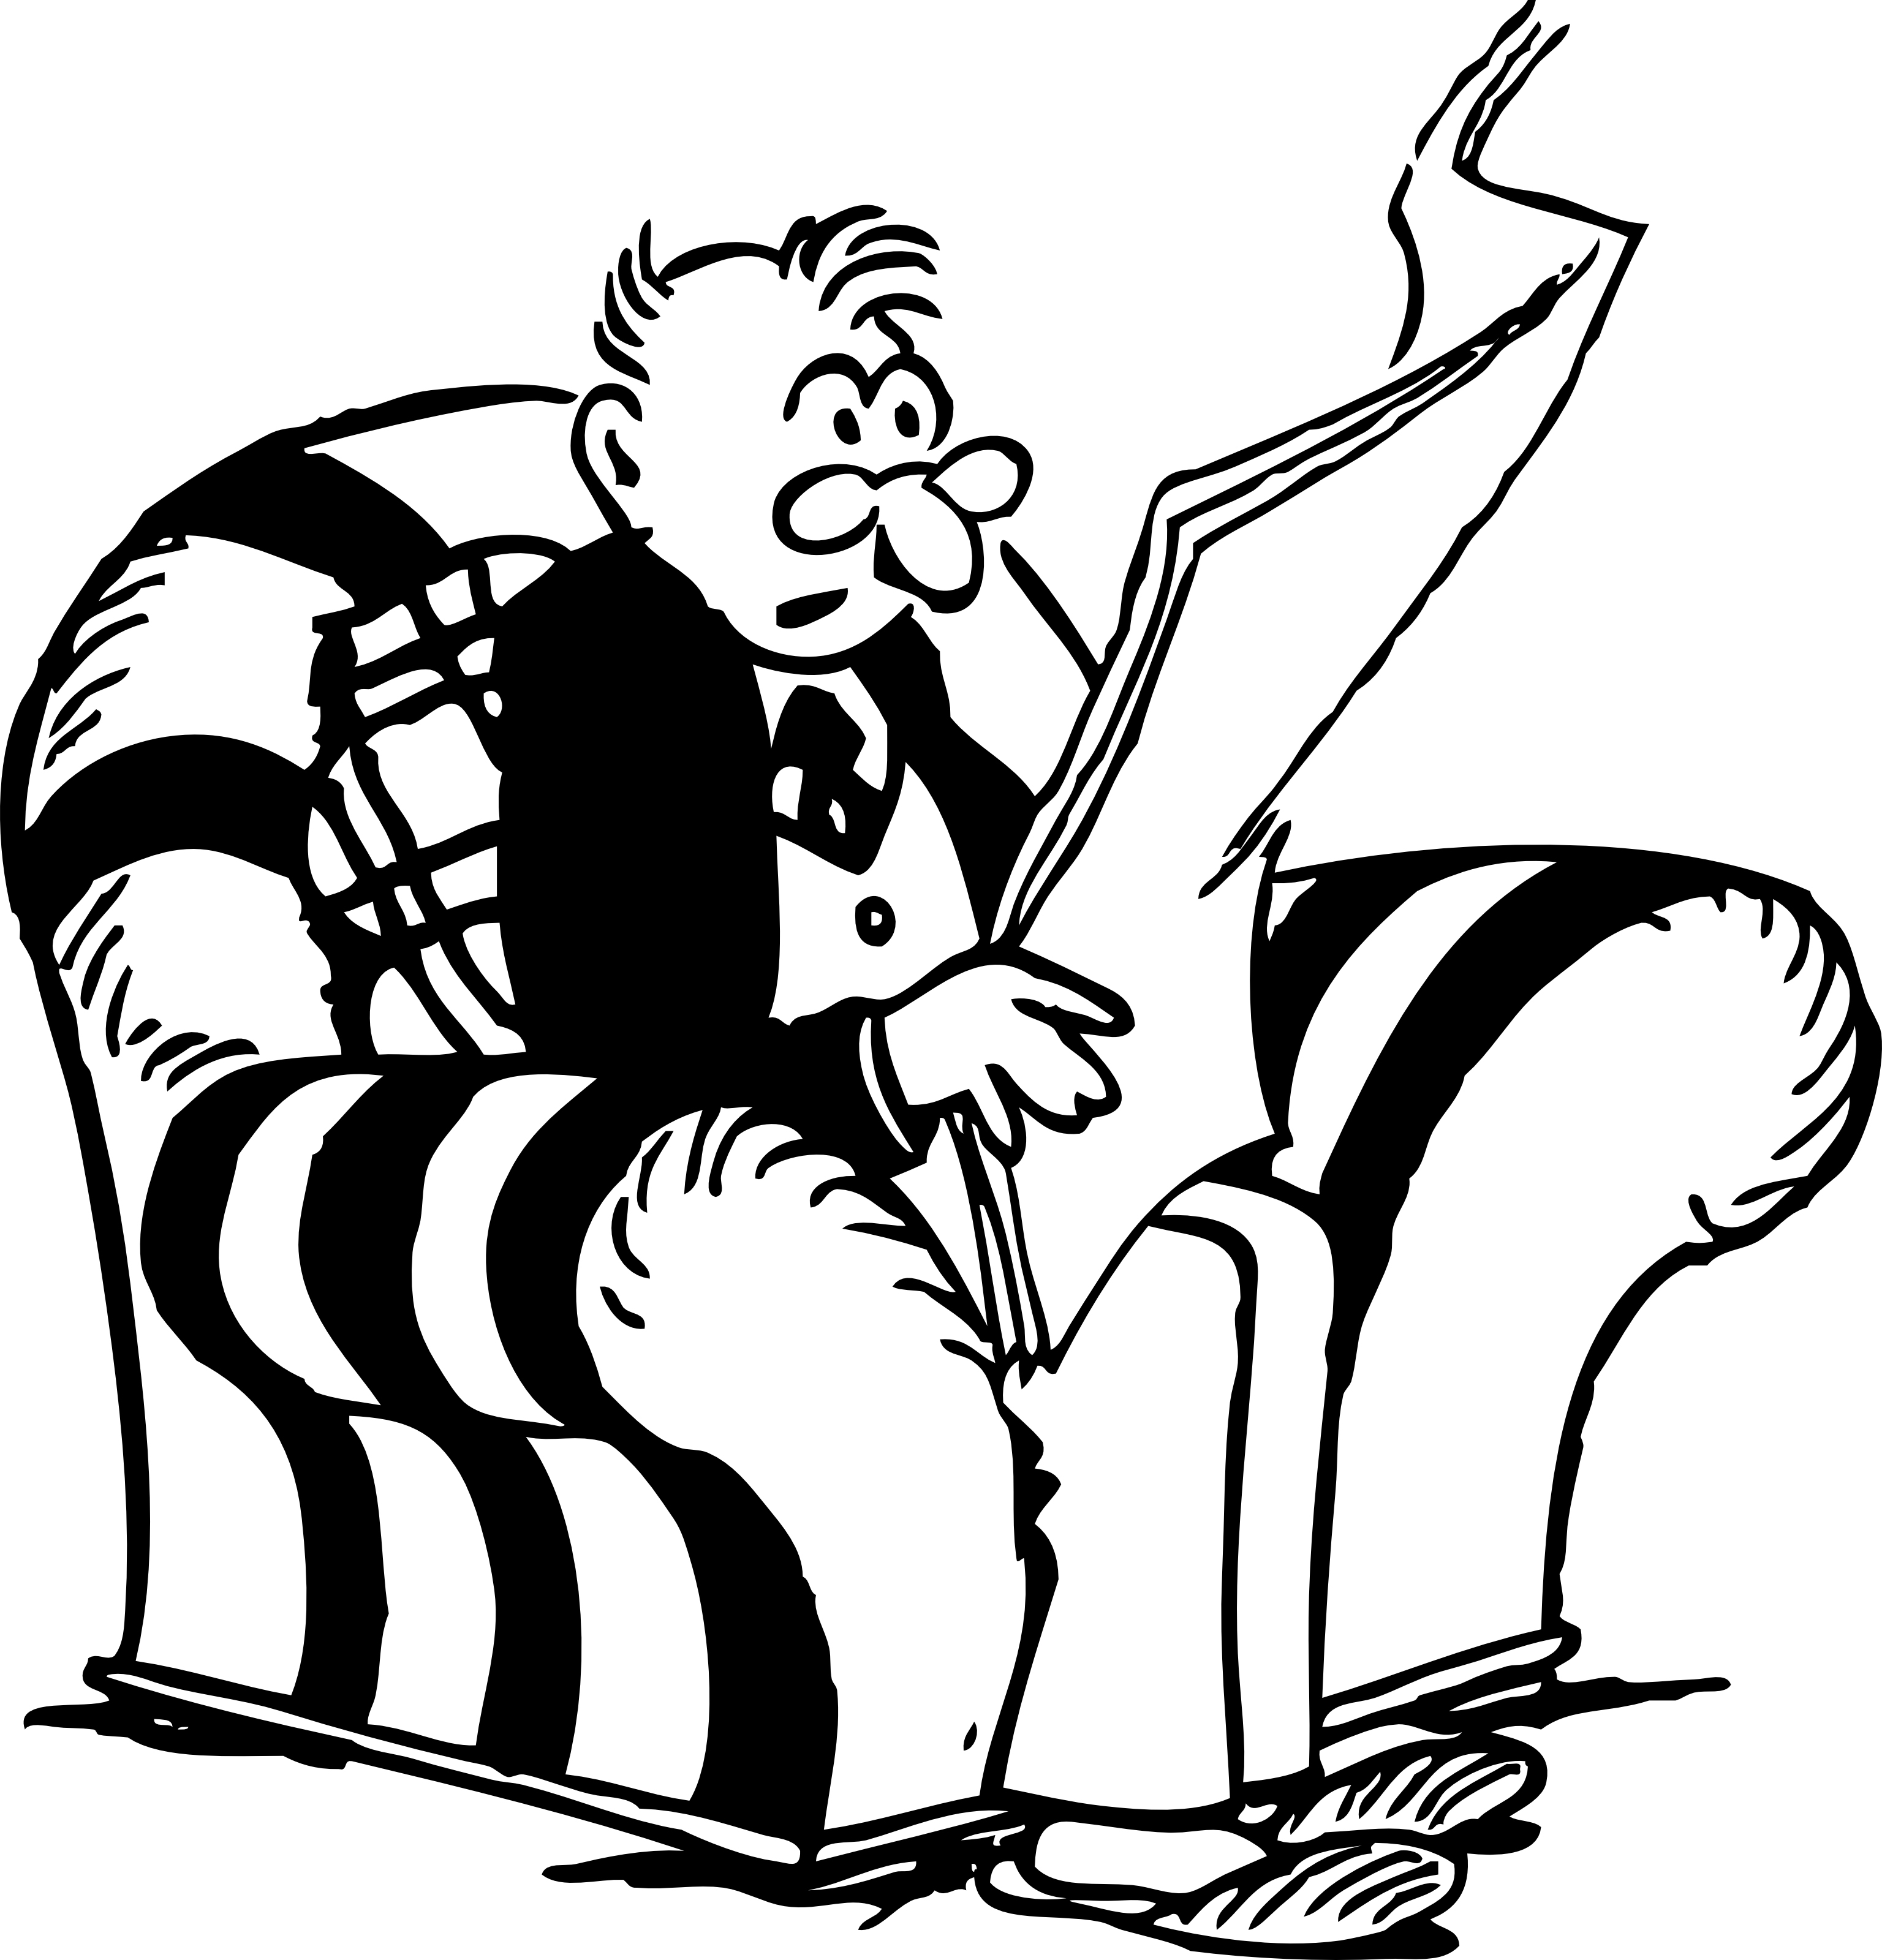 Retro Clipart Of A Man Reading Interesting News From A Newspaper.